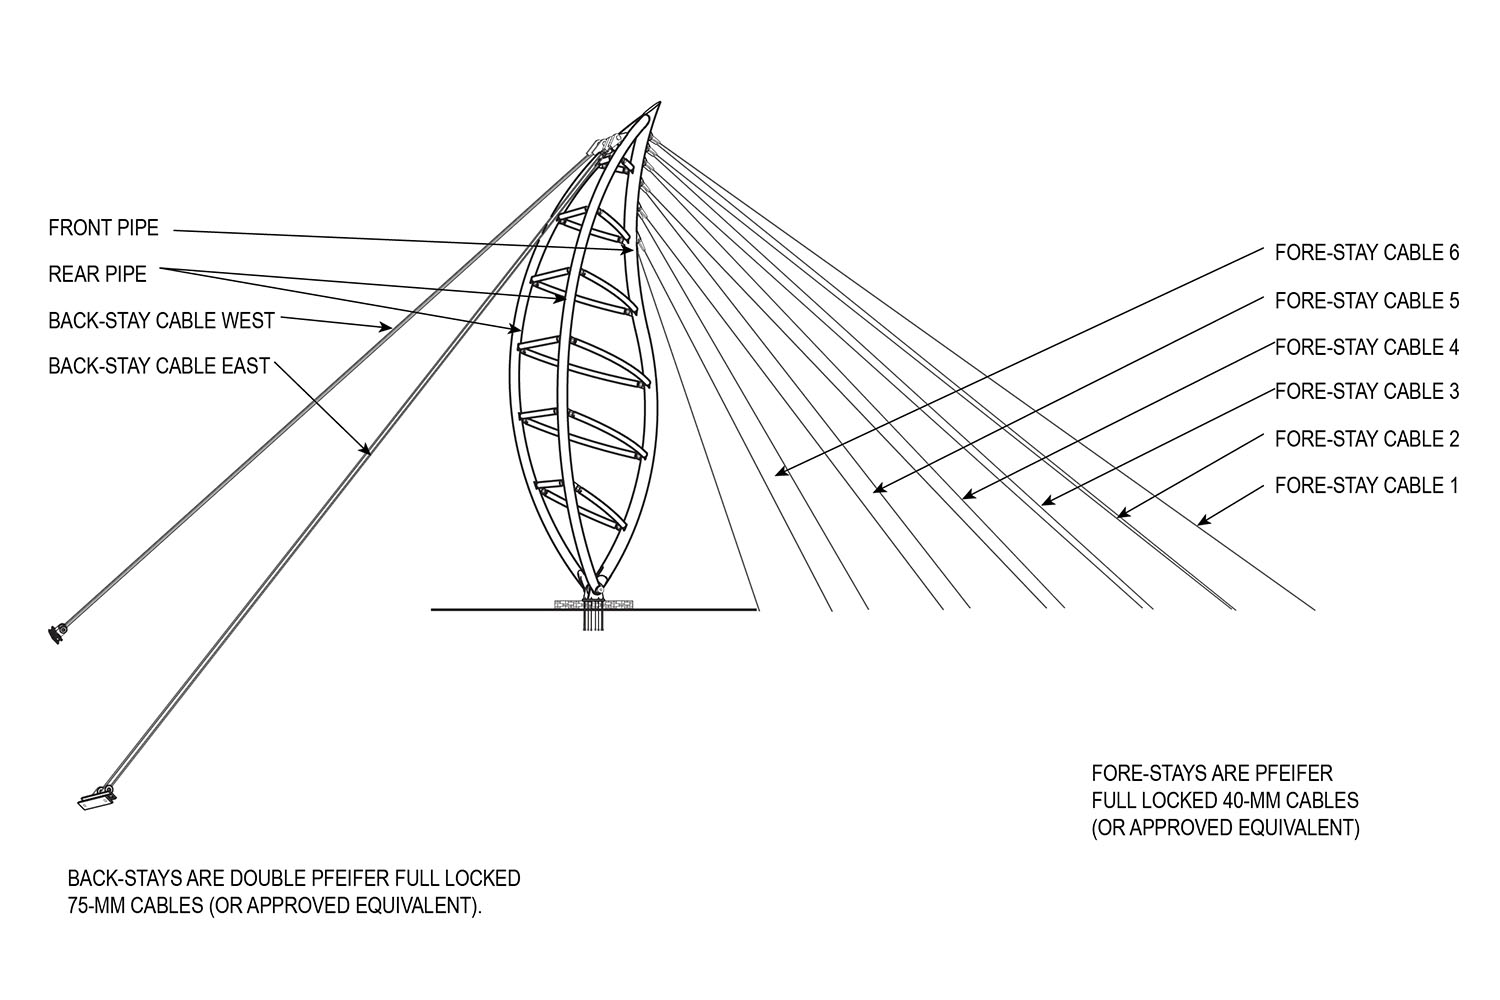 SIX PAIRS OF FORE-STAY CABLES AND TWO LARGE BACK-STAY CABLES SUPPORT THE BRIDGE Fentress Architects}